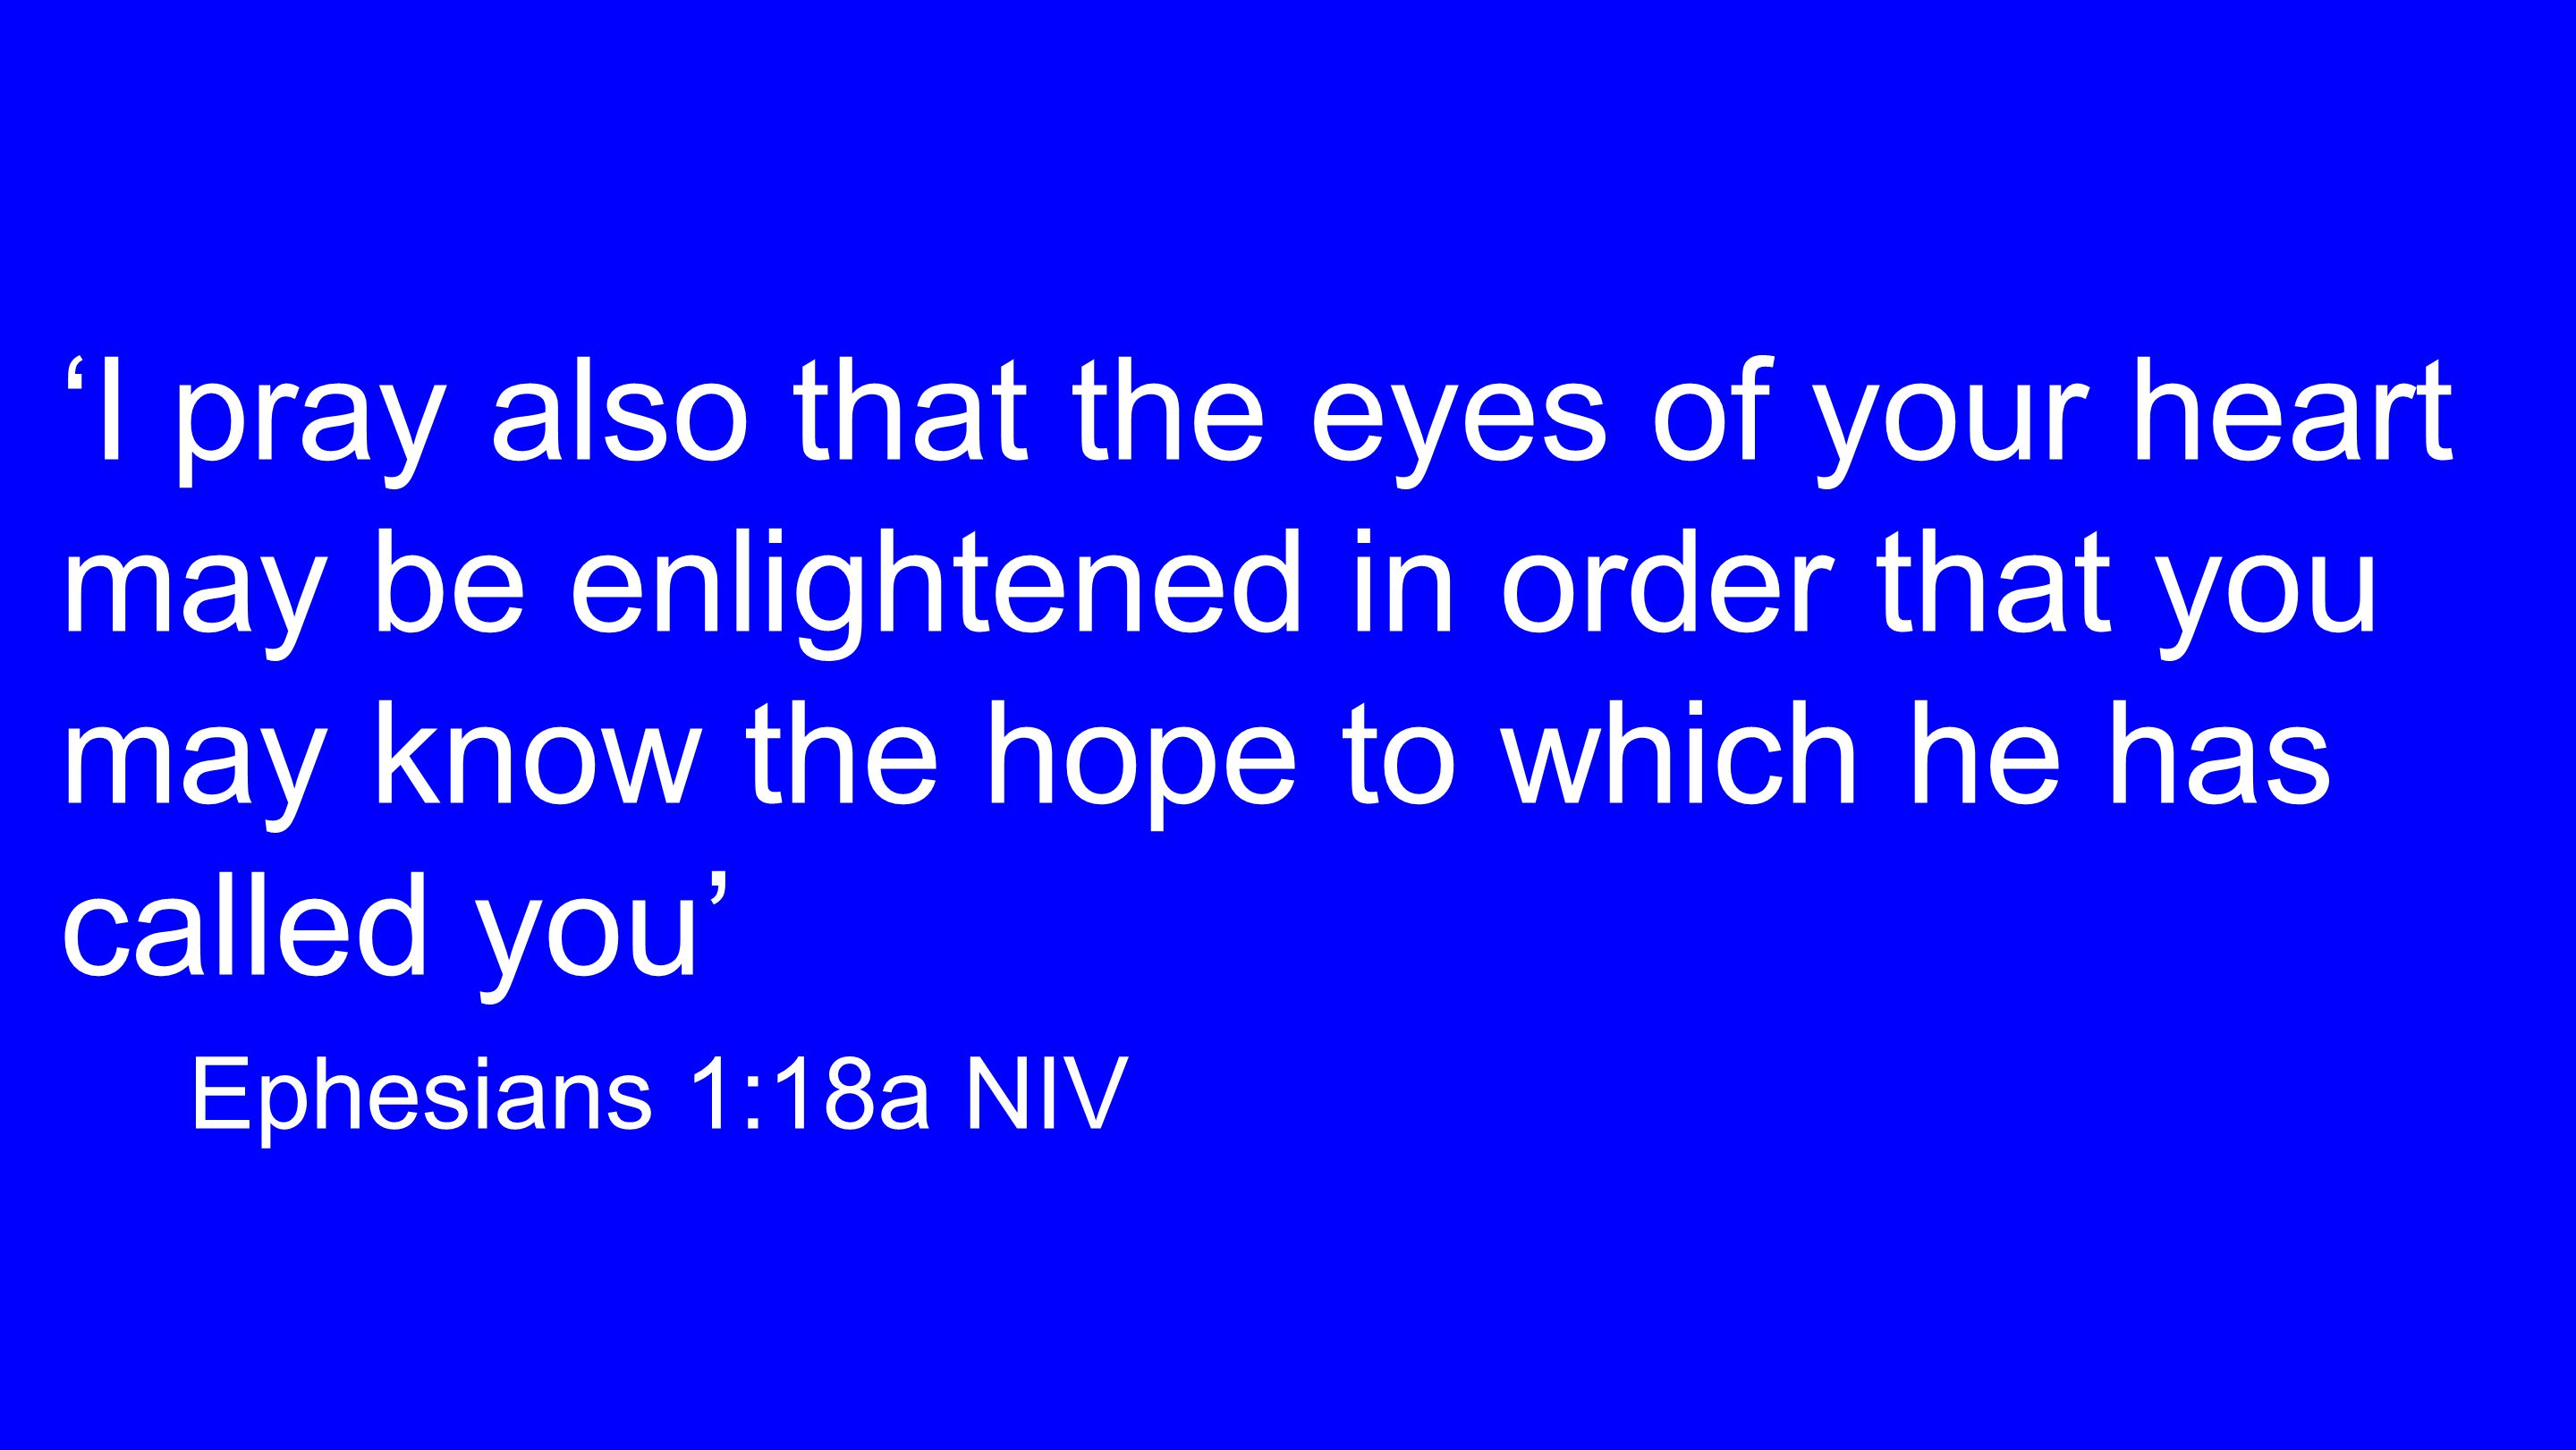 'I pray also that the eyes of your heart may be enlightened in order that you may know the hope to which he has called you' Ephesians 1:18a NIV